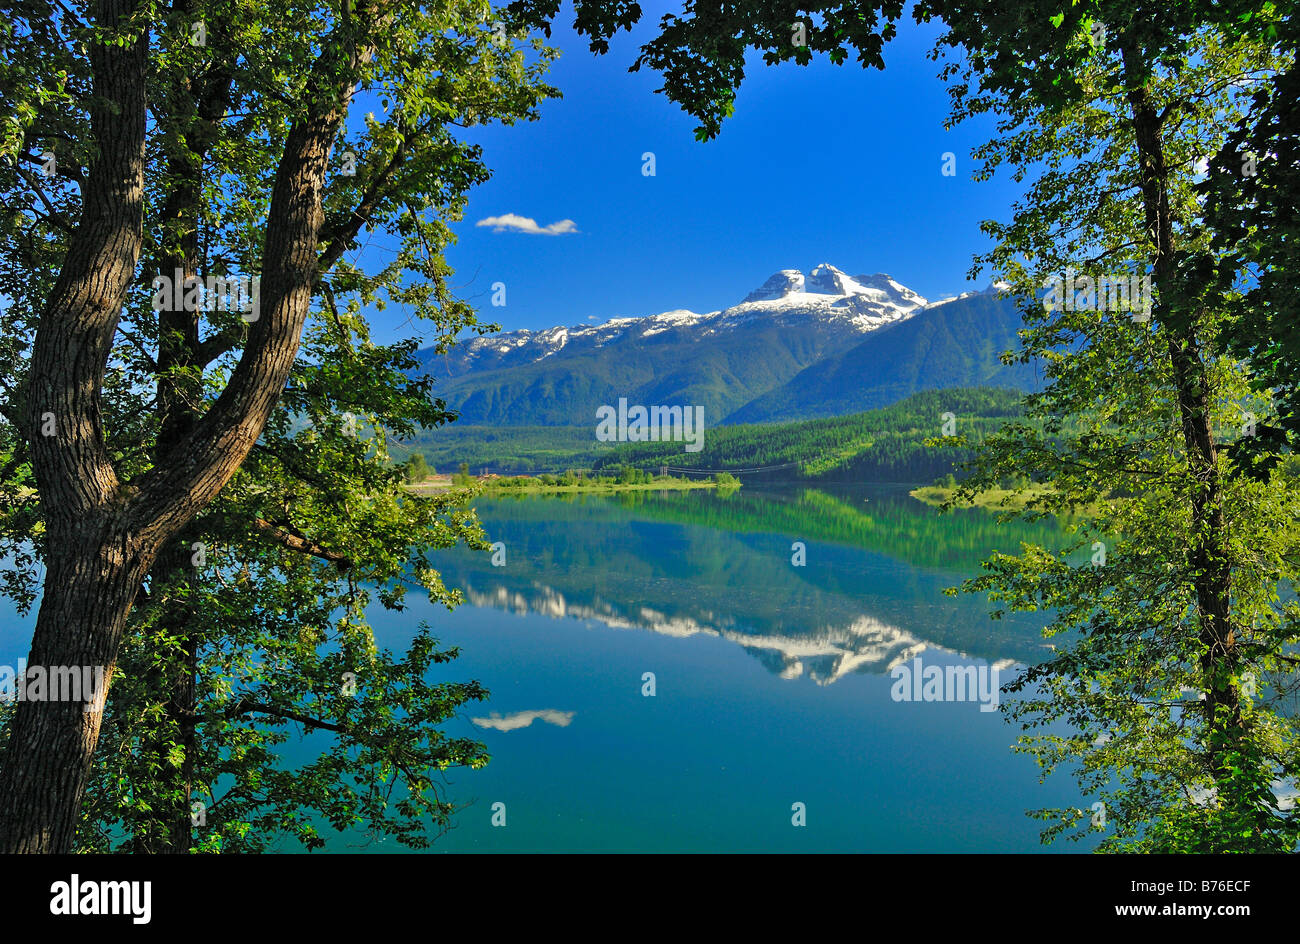 Mount Begbie near the town of Revelstoke in British Columbia, Canada, framed by trees. Horizontal Format - Stock Image